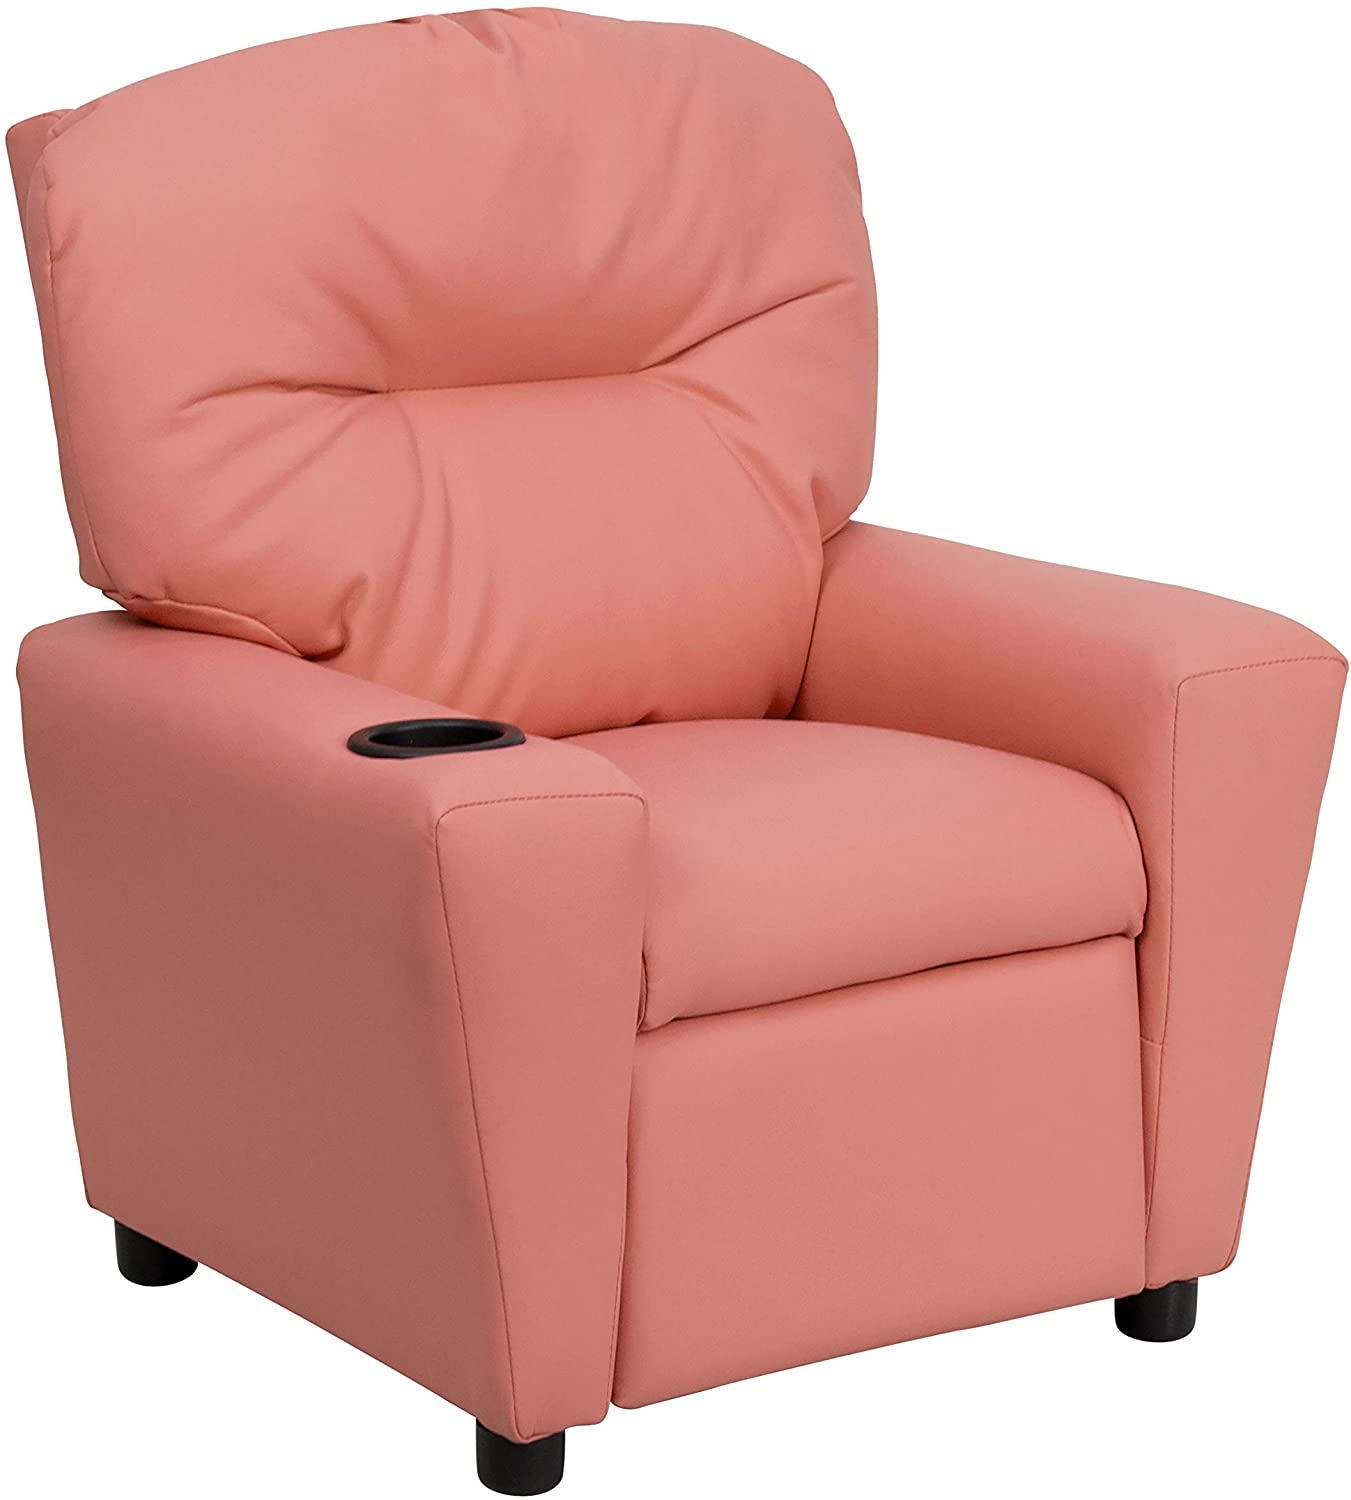 10.Contemporary Pink Vinyl Kids Recliner with Cup Holder